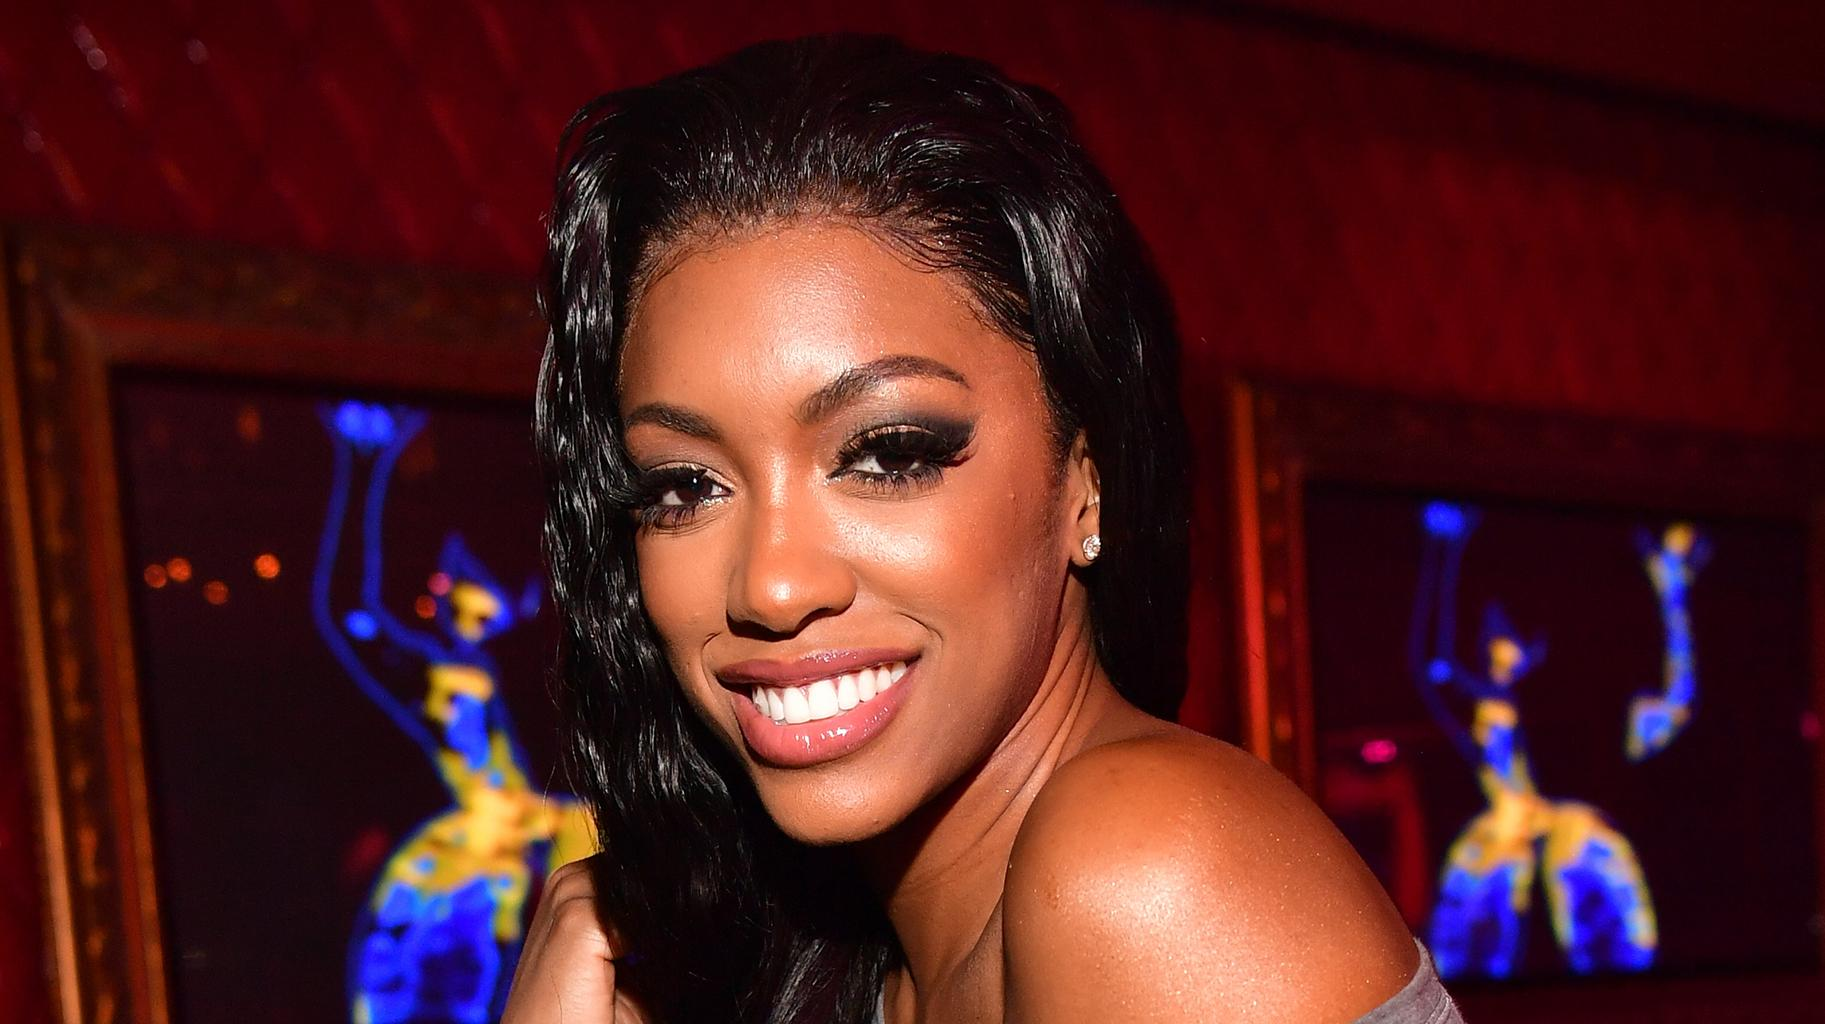 Porsha Williams Is Telling Fans Her Complete Story - She Wrote A Book